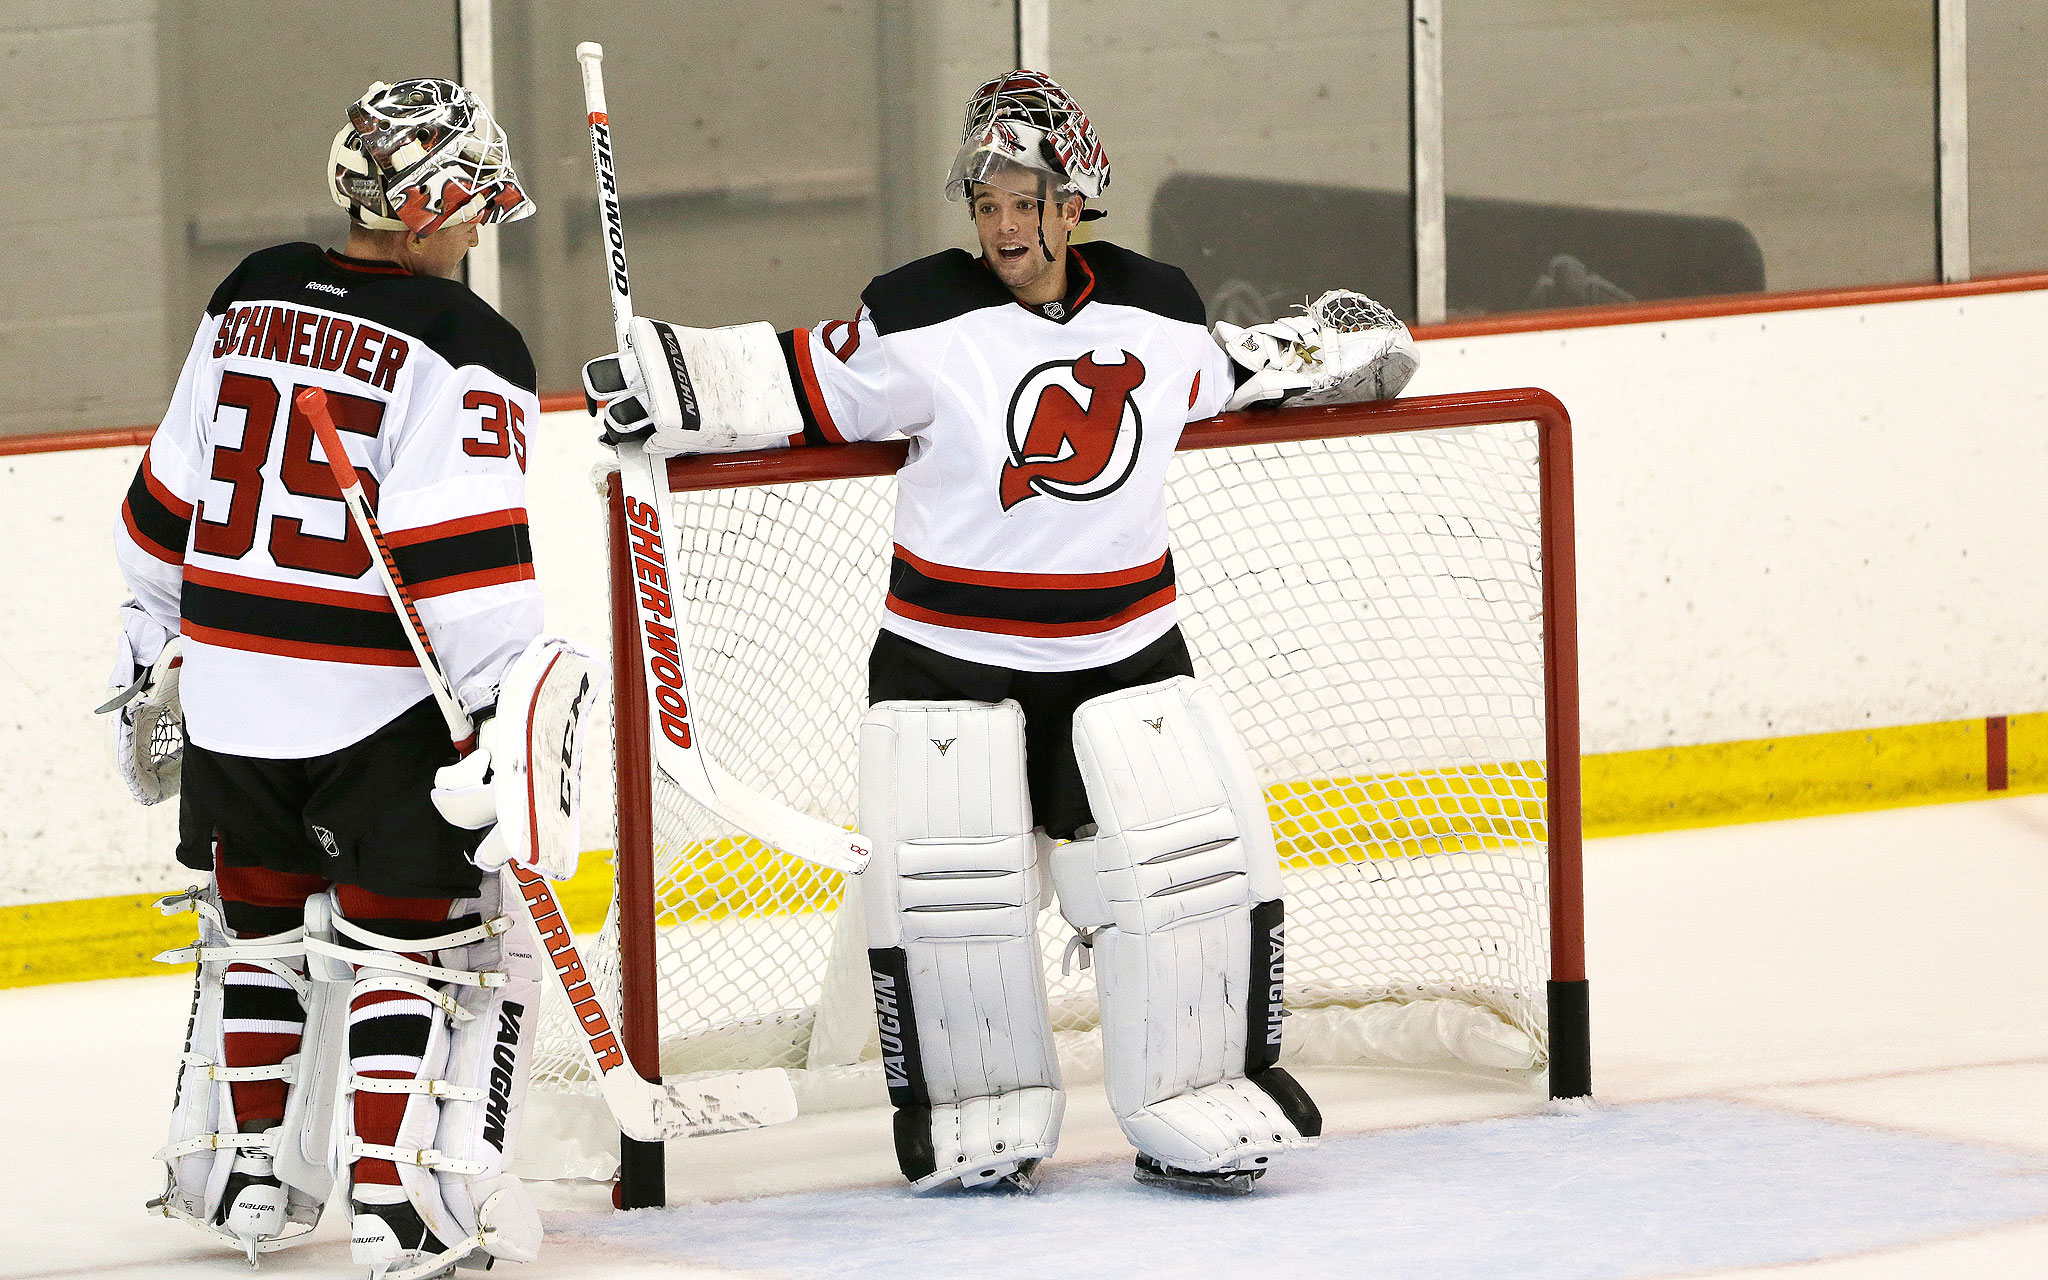 Cory Schneider in New Jersey